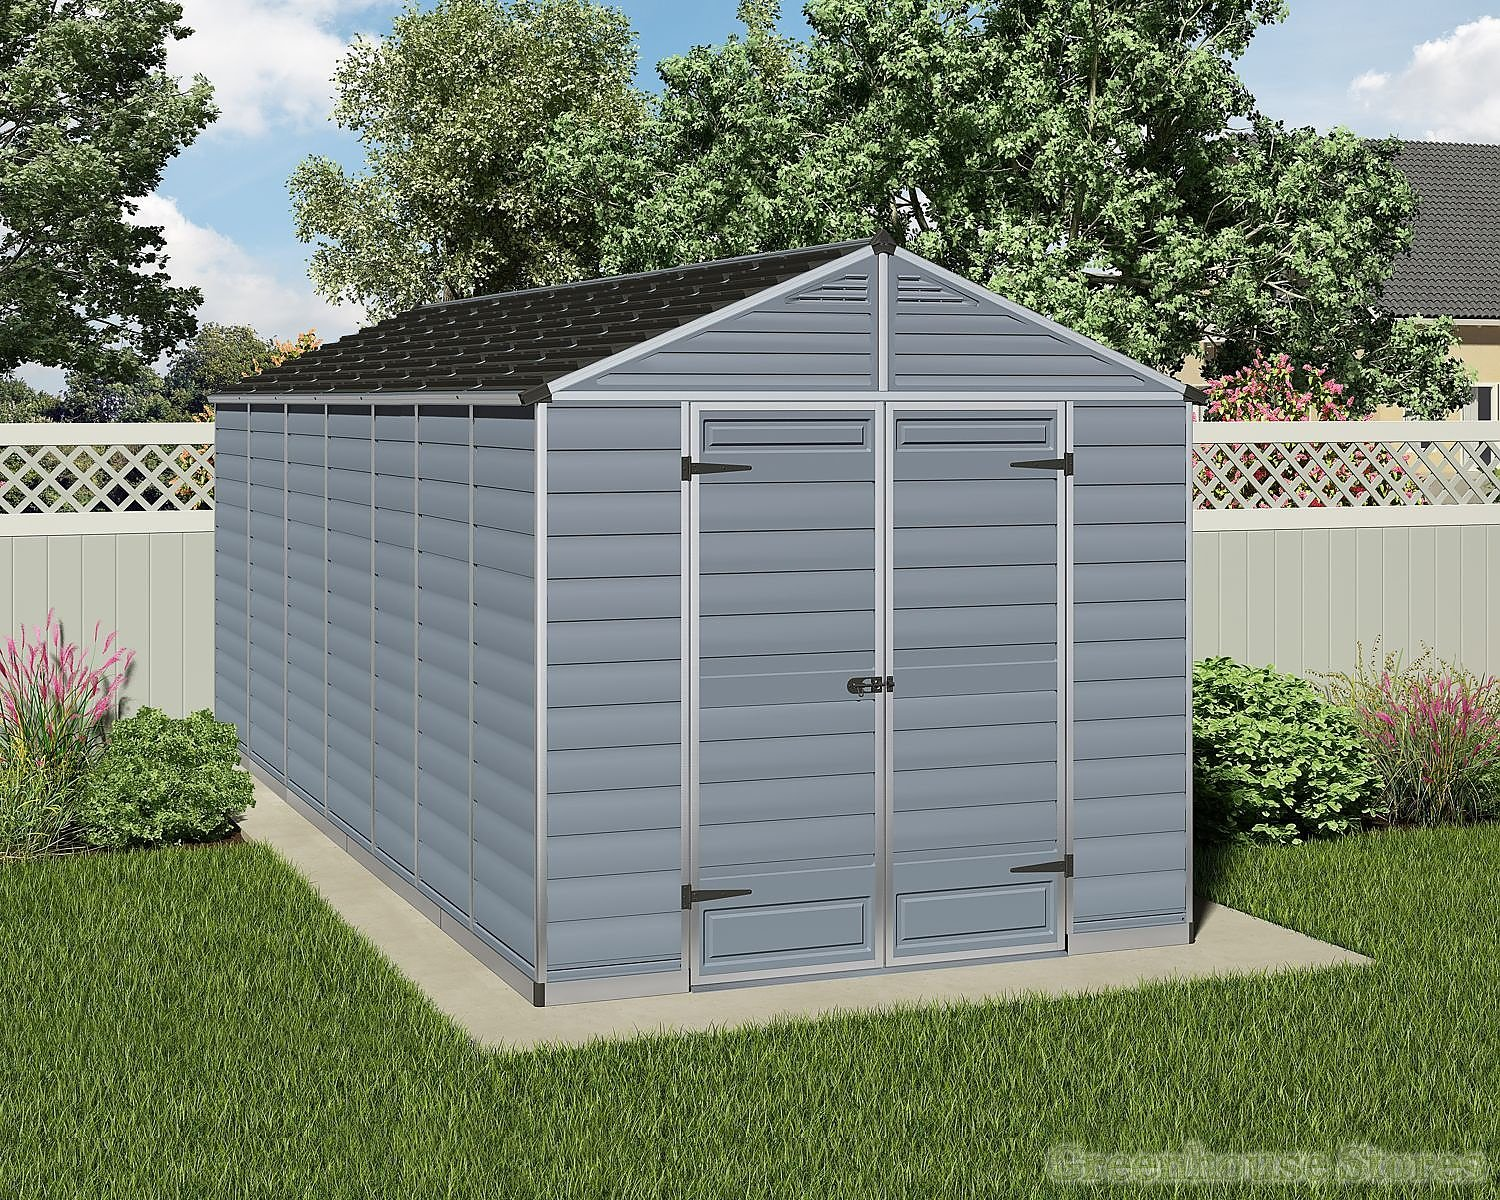 Palram 8x16 Plastic Skylight Grey Shed Greenhouse Stores